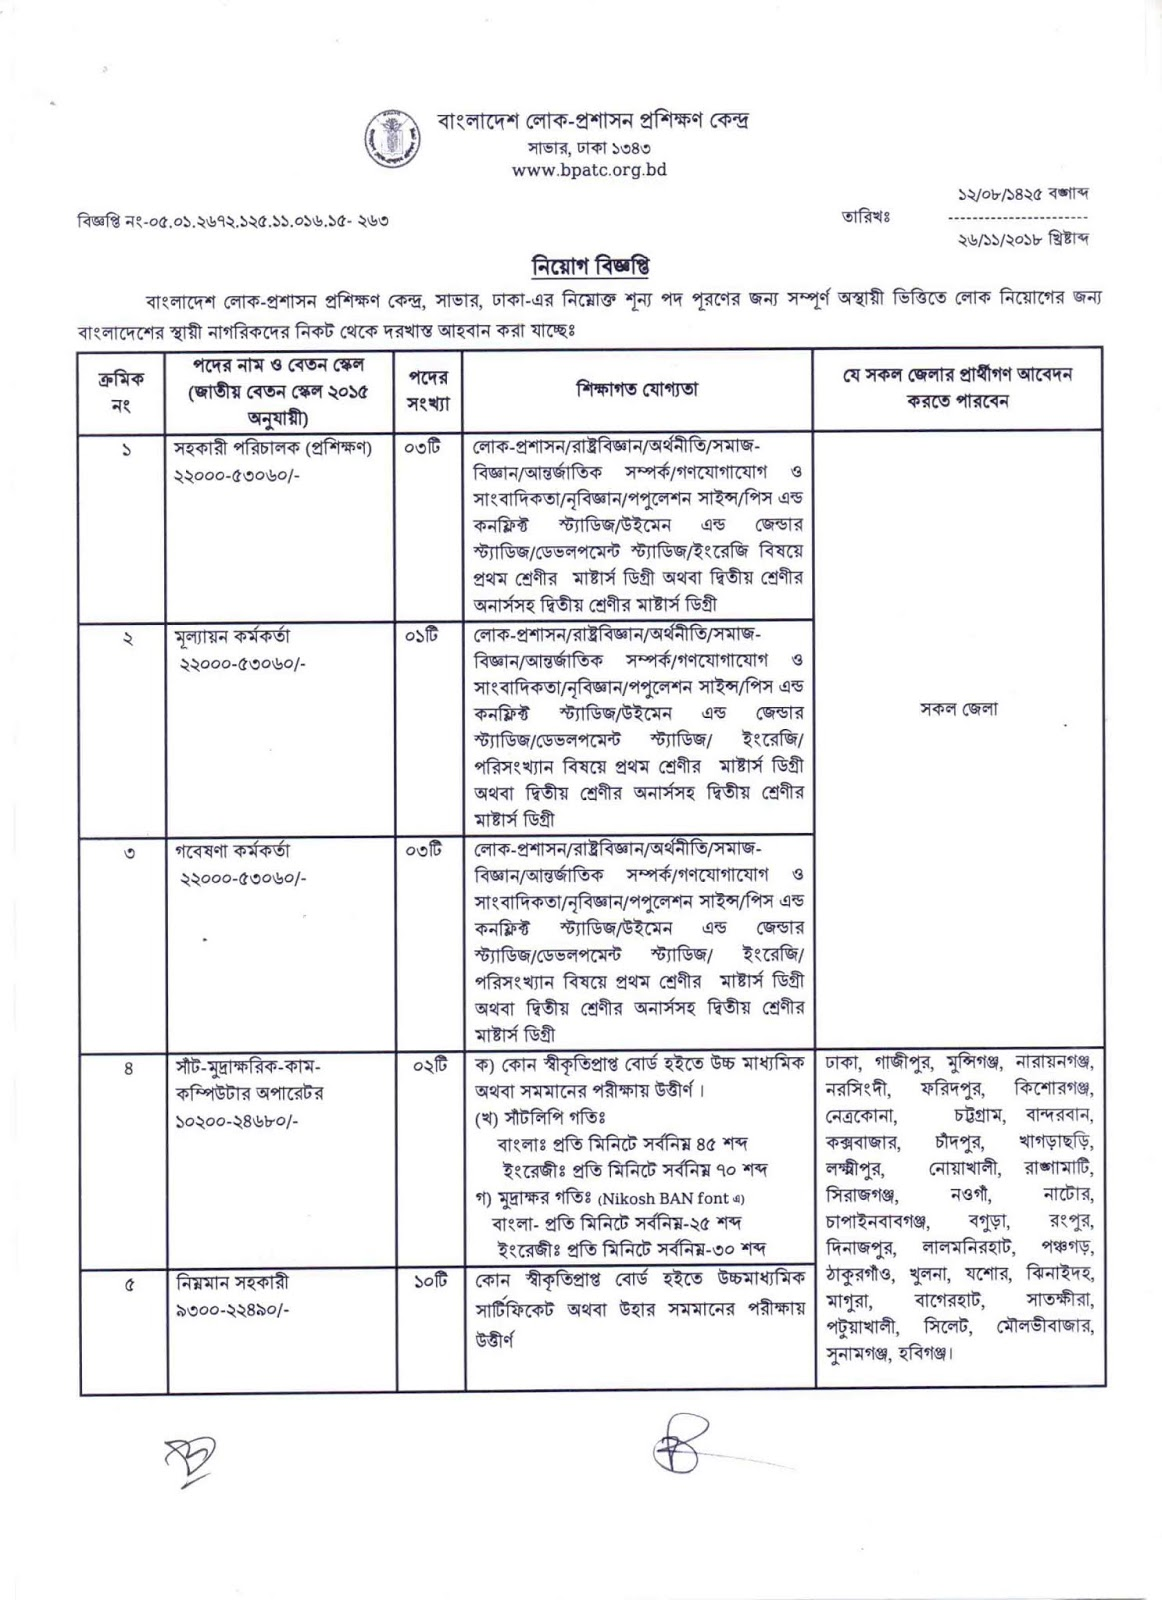 Bangladesh Public Administration Training Centre (BPATC) Job Circular 2018